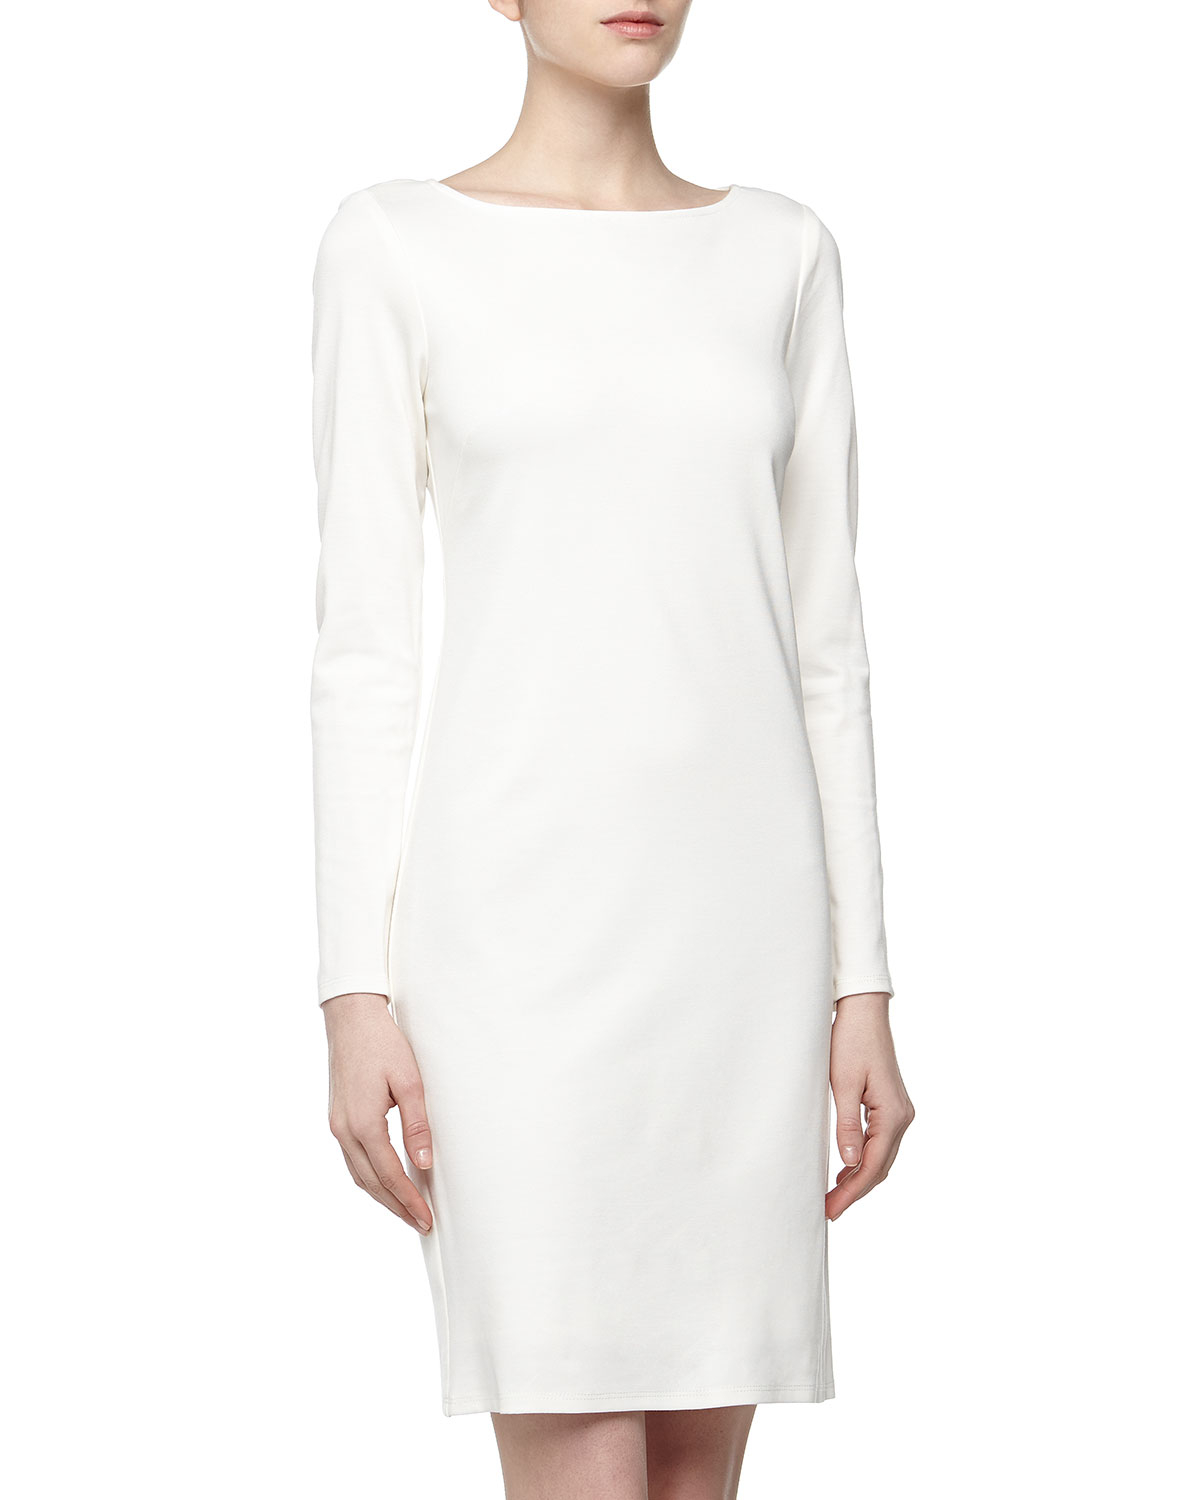 isaac mizrahi longsleeve ponte sheath dress winter white